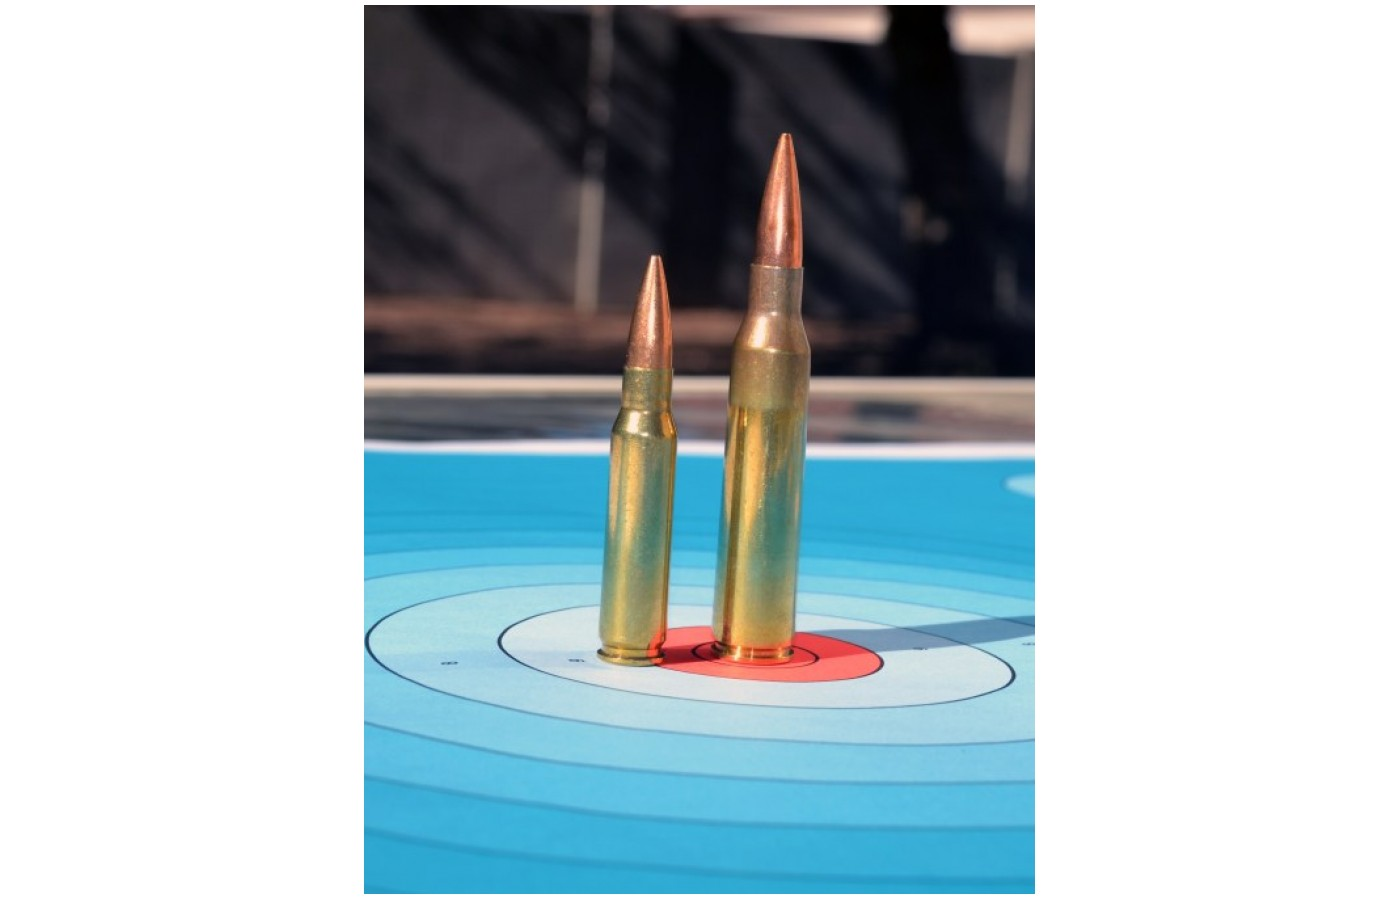 The Lapua .338 are some of the most powerful cartridges out there.